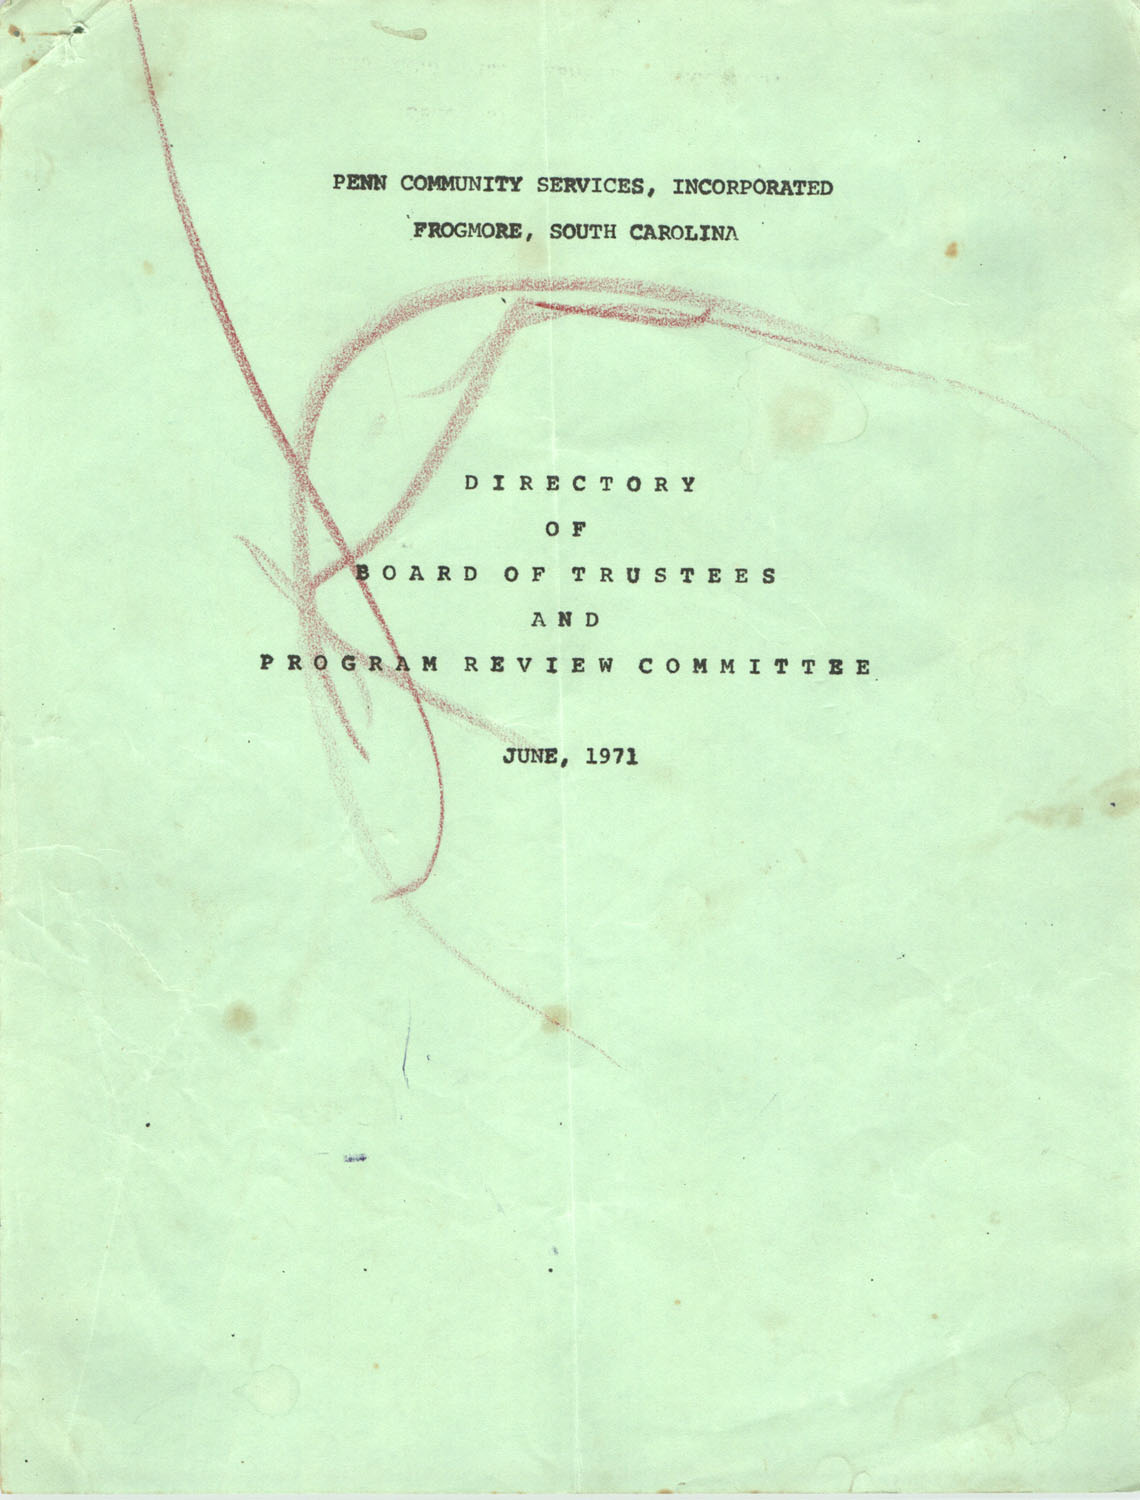 Directory of Board of Trustees and Program Review Committee, Penn Community Services, June 1971